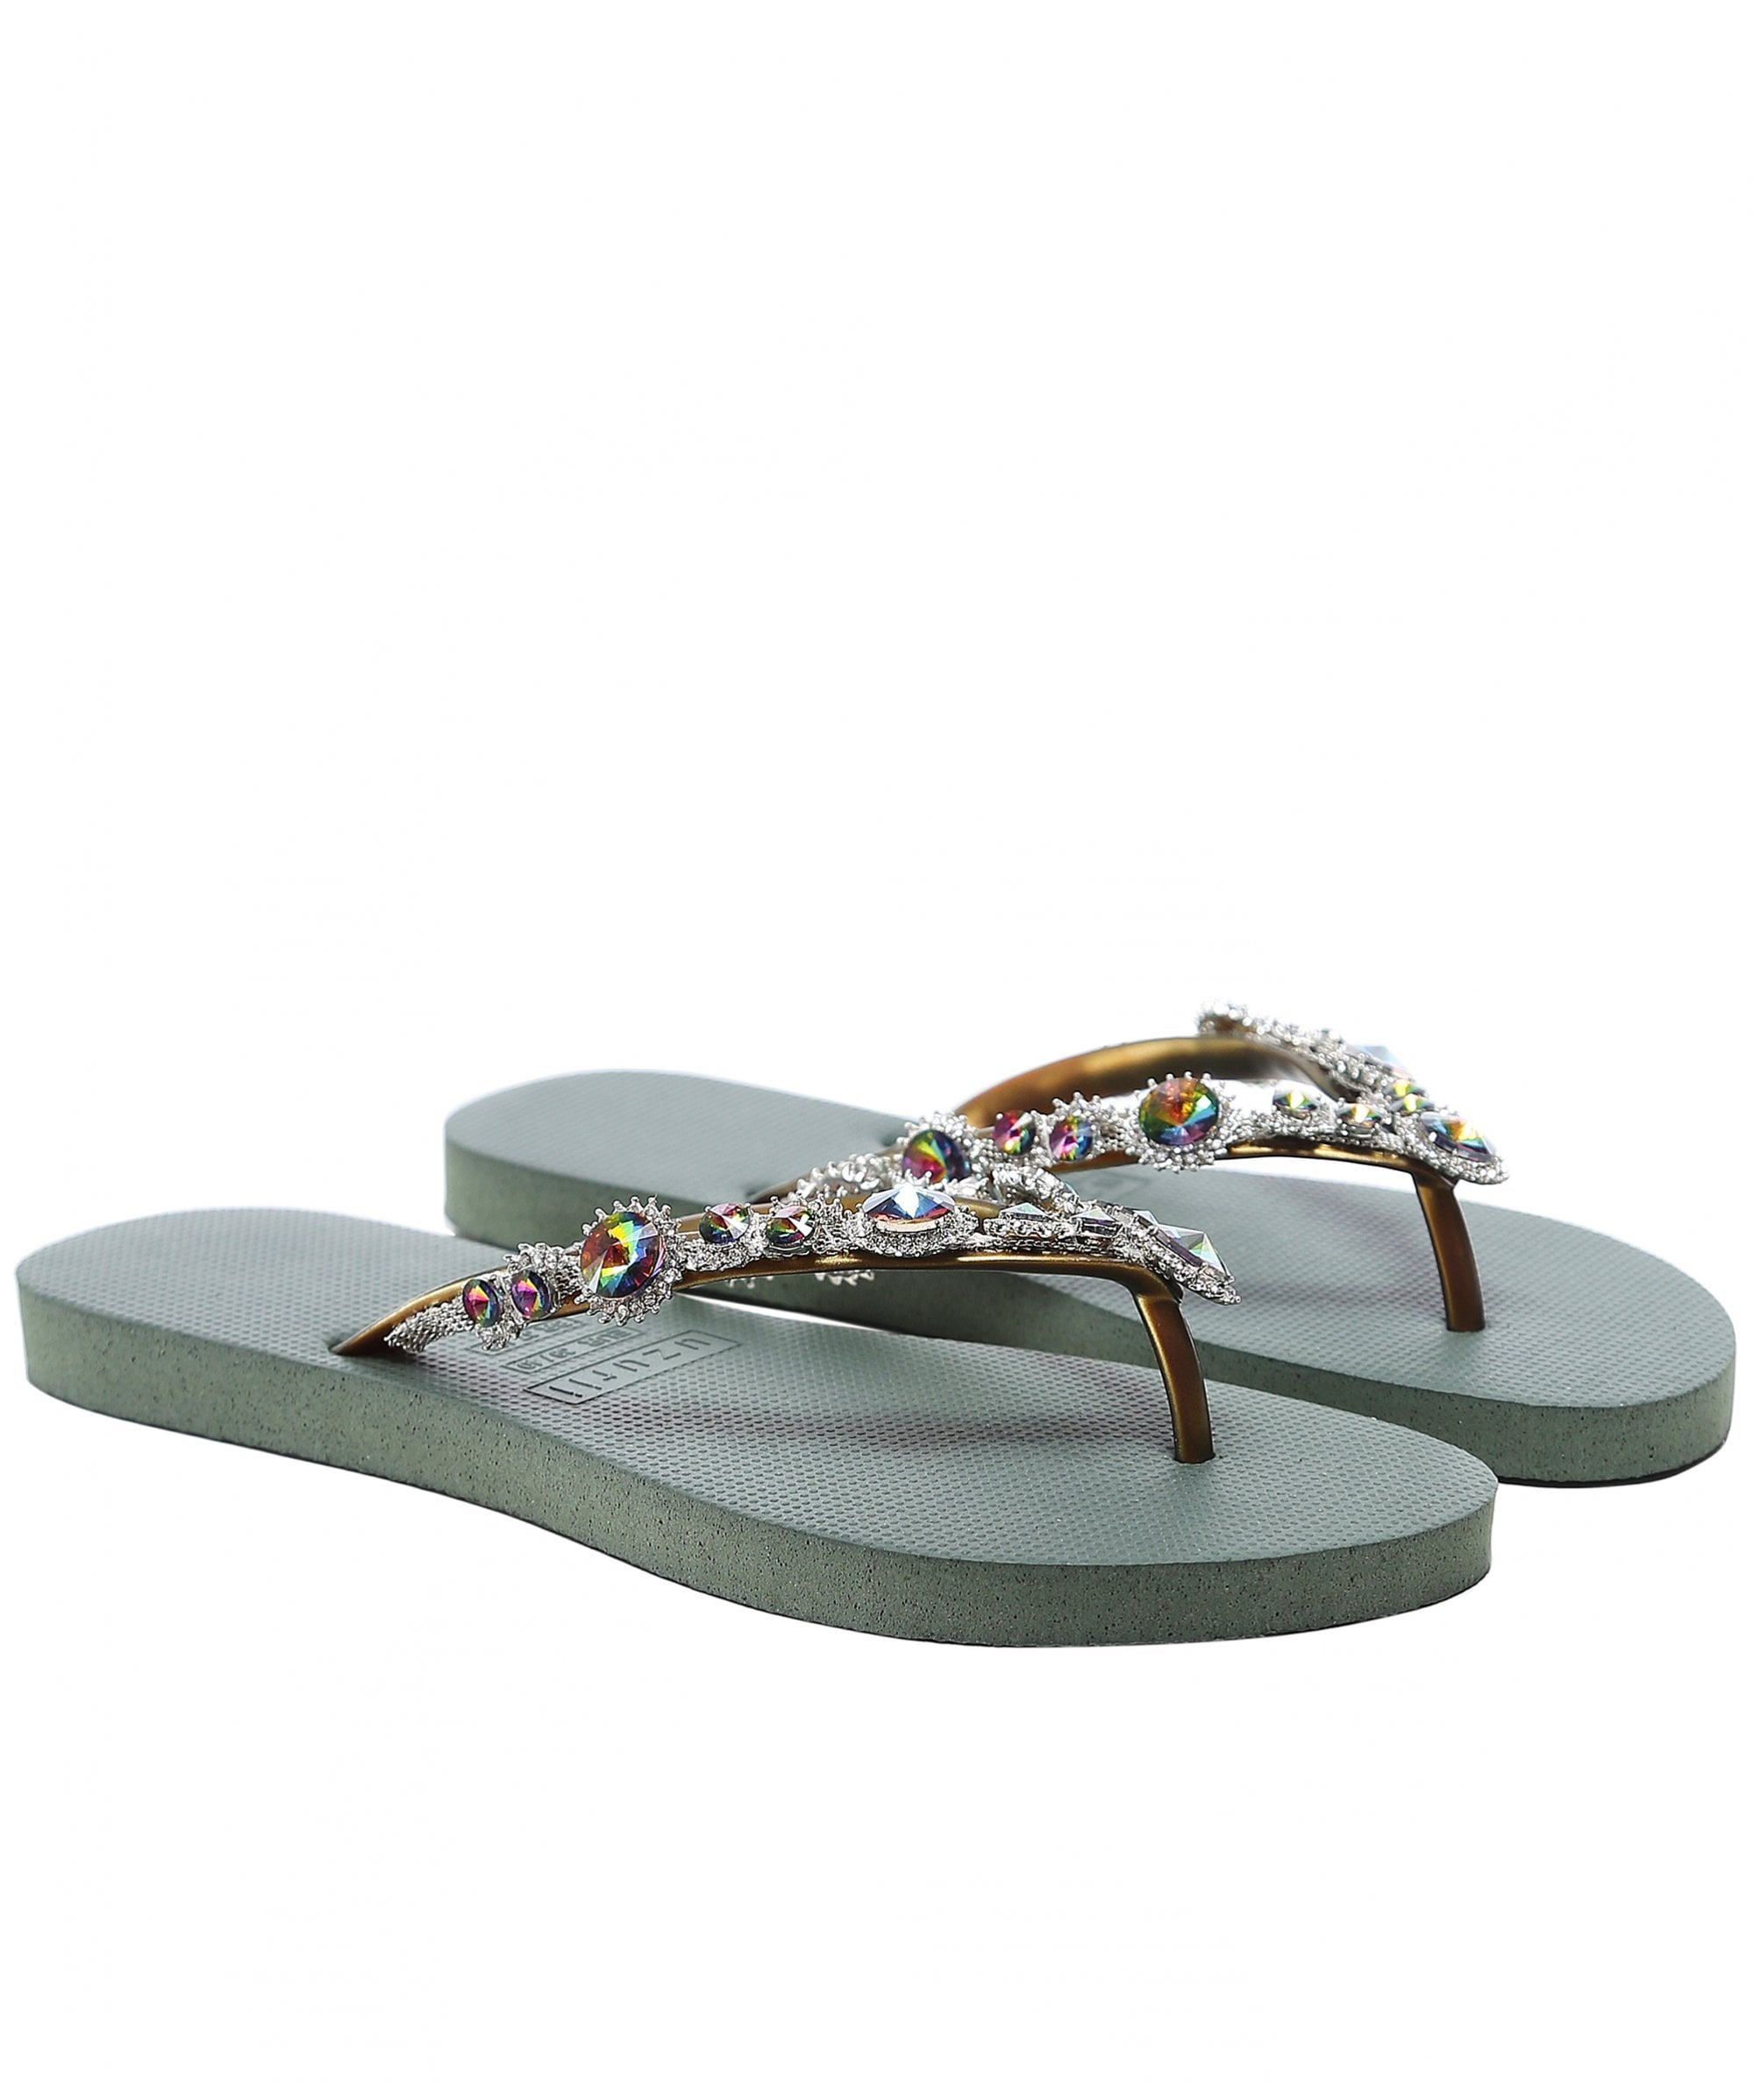 This is an image of a pair of green flip flops with gold straps and crystal embellishment